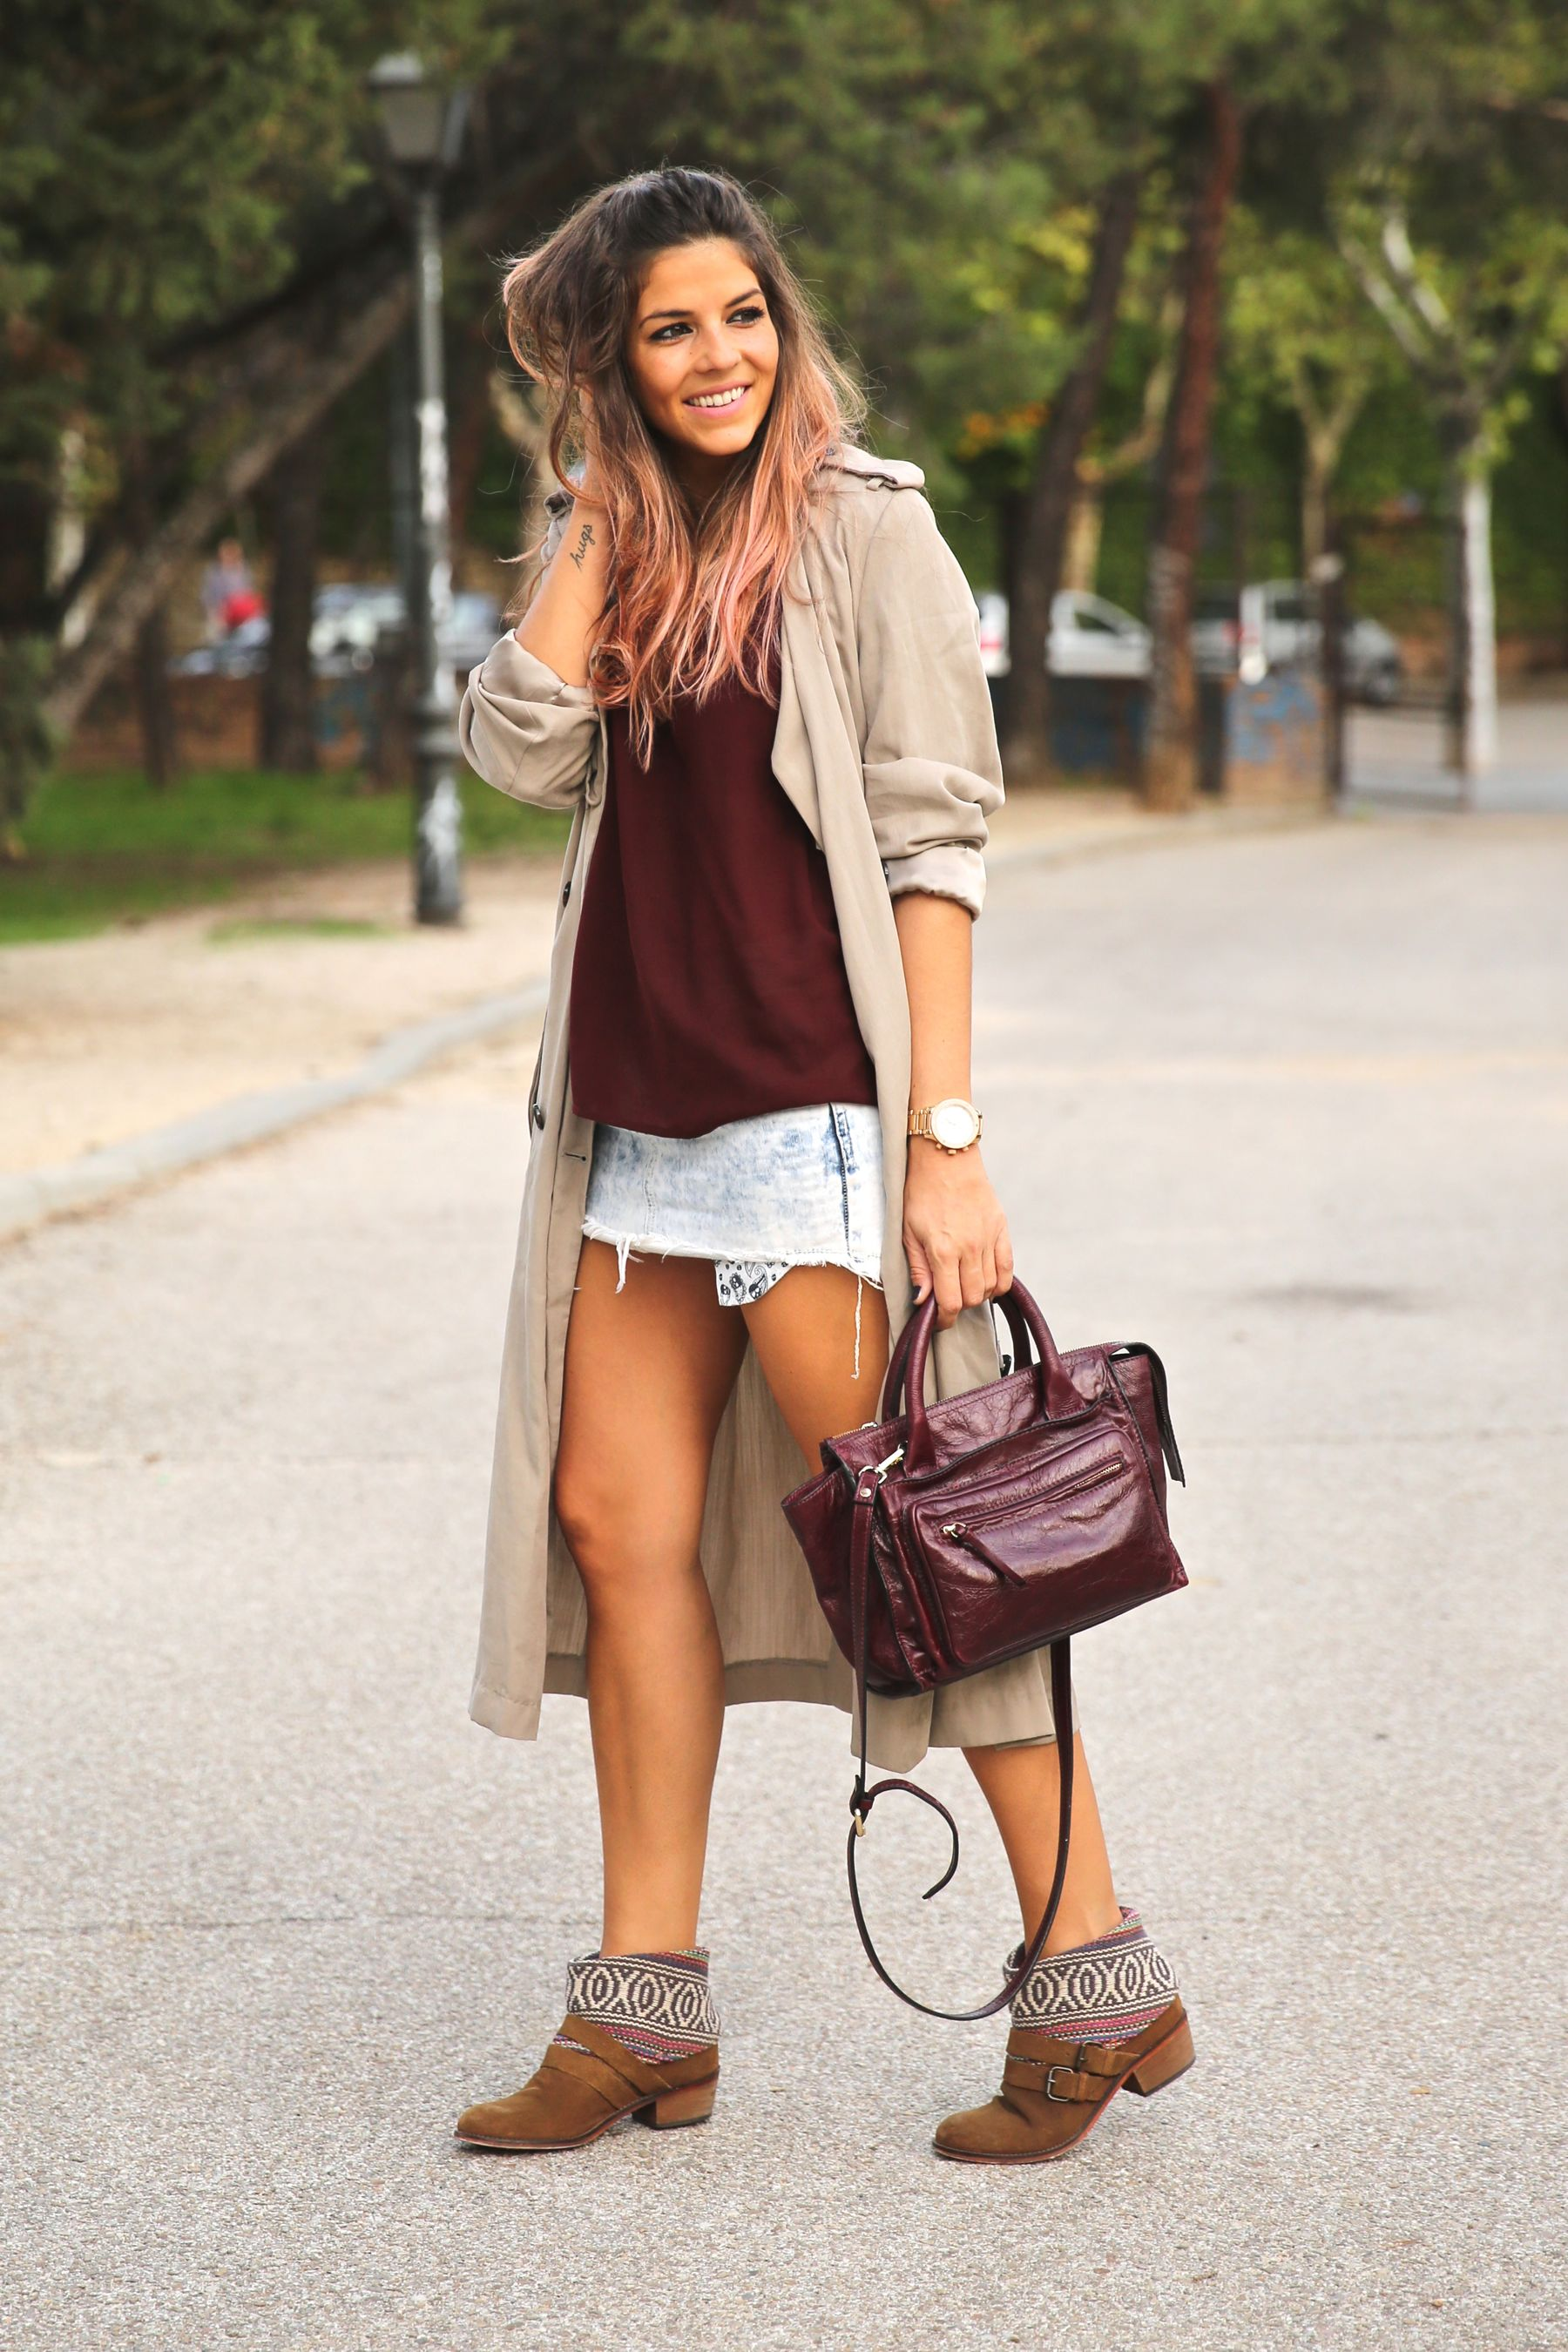 trendy_taste-look-outfit-street_style-ootd-blog-blogger-fashion_spain-moda_españa-boho-hippie-gabardina-botines_camperos-booties-gabardina-raincoat-burgundy_bag-zara-11